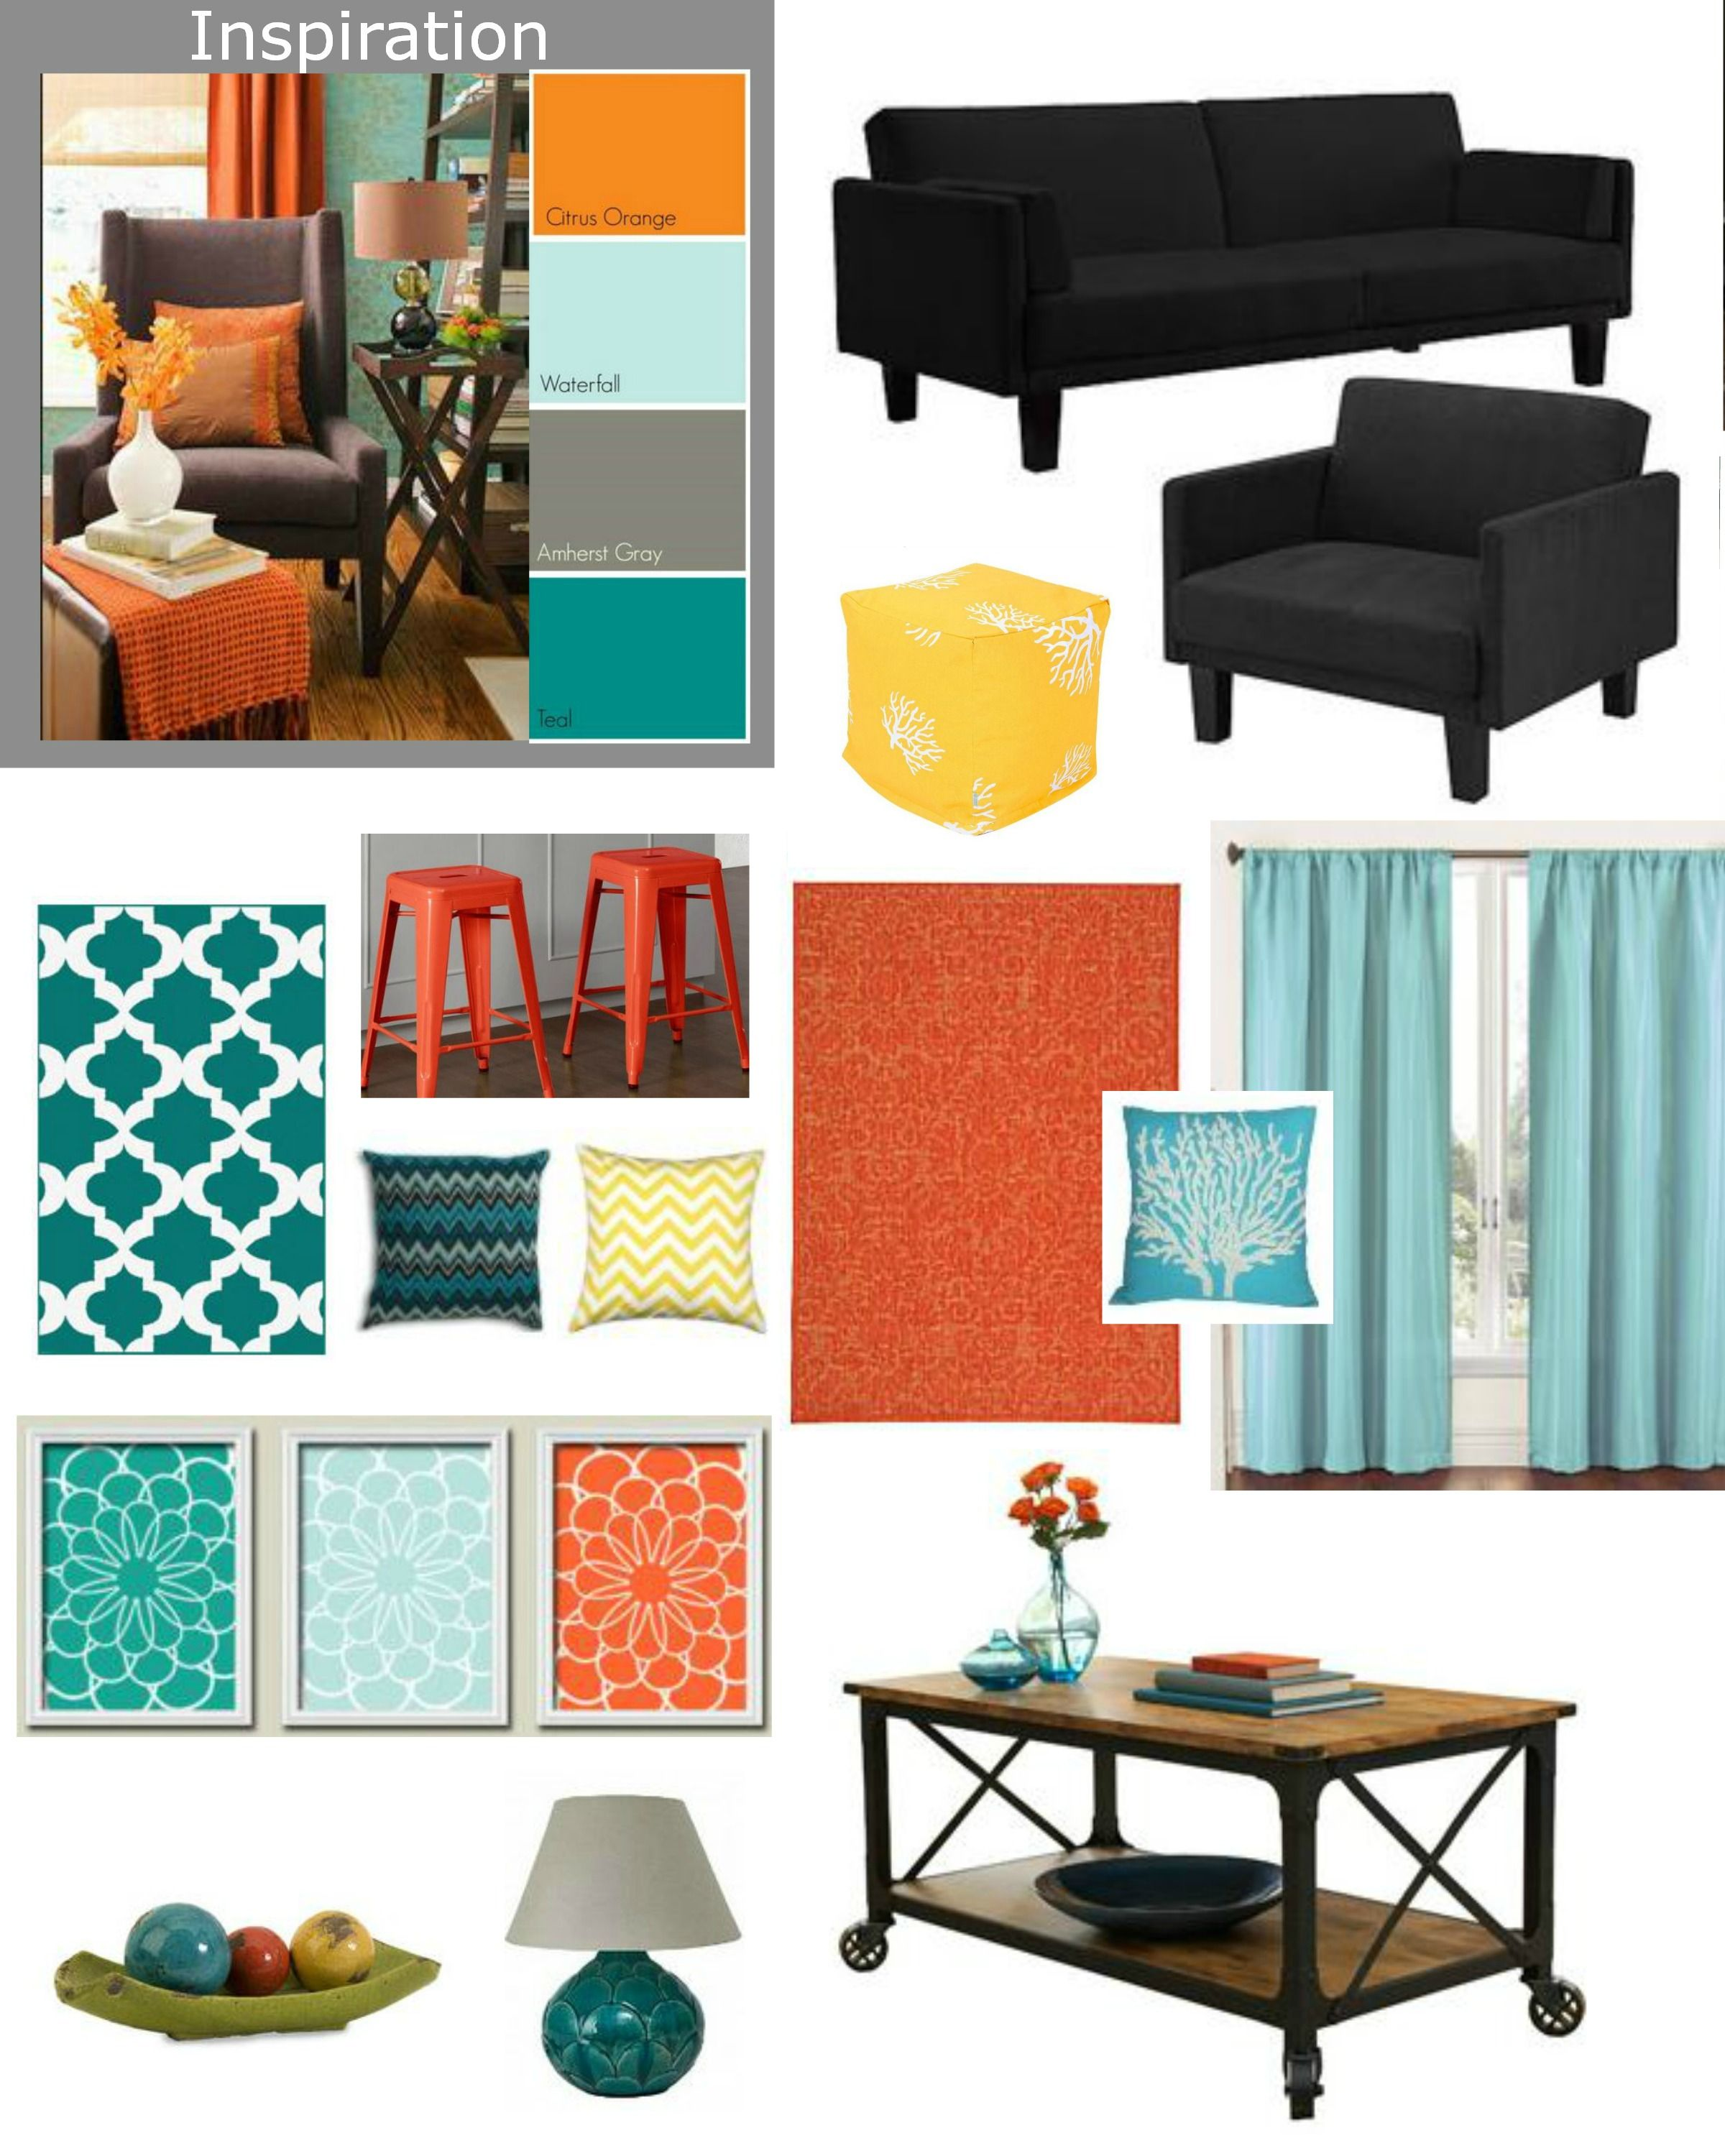 Teal and yellow living room - Cheap Living Room Makeover Furniture Futon And Chair At Walmart 299 Coffee Table Yellow Ottomanteal